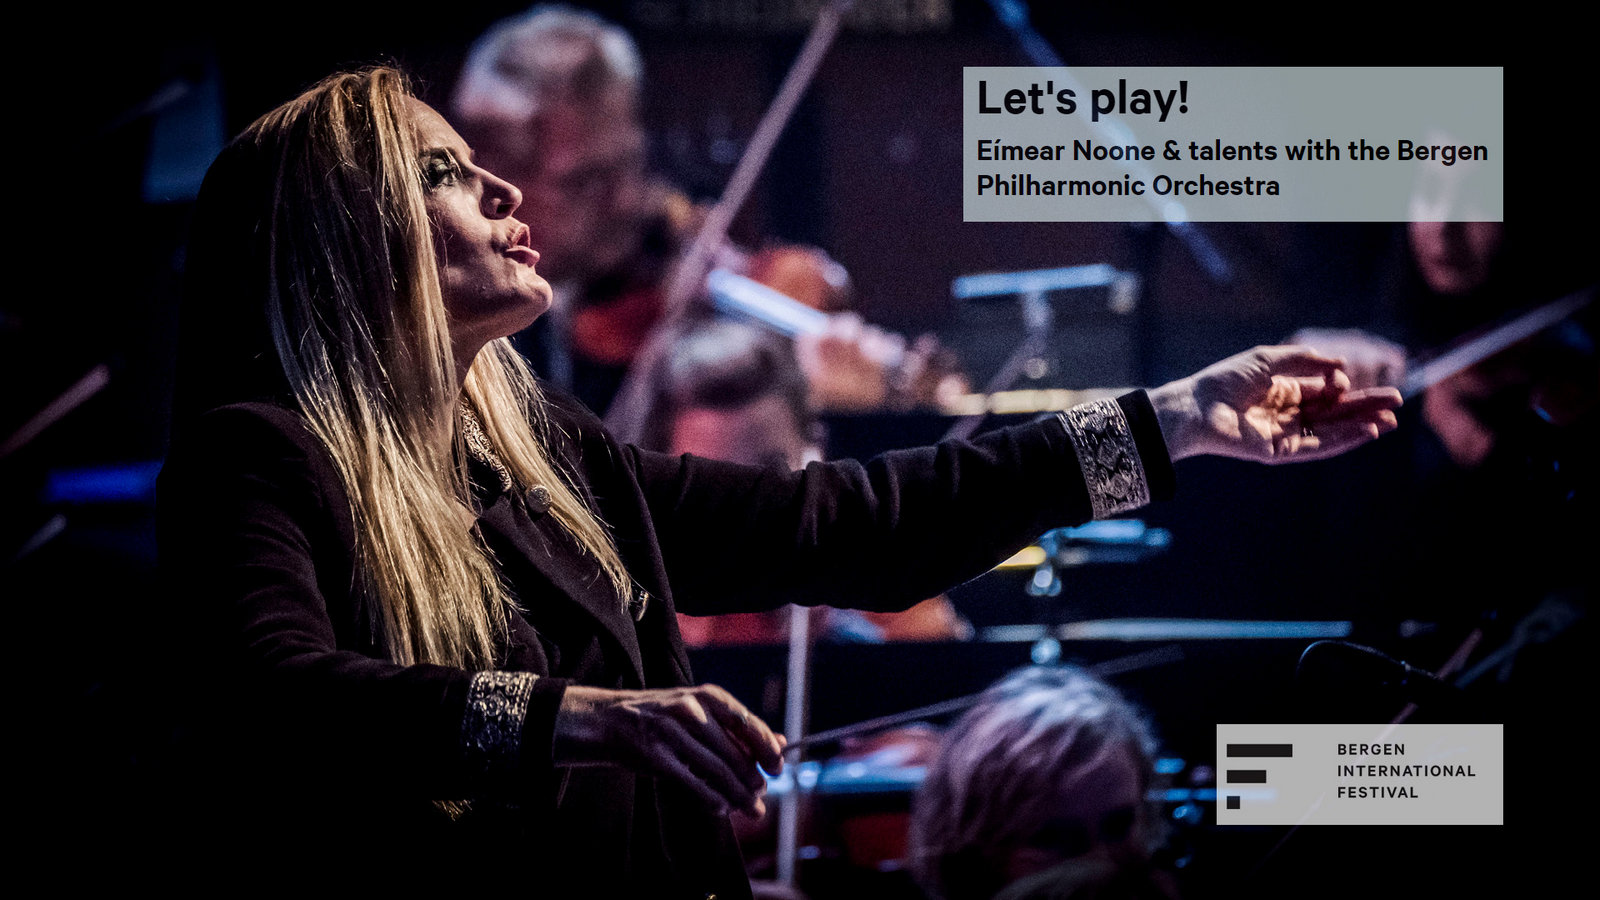 Video games concert 'Let's Play' with the Bergen Philharmonic ...